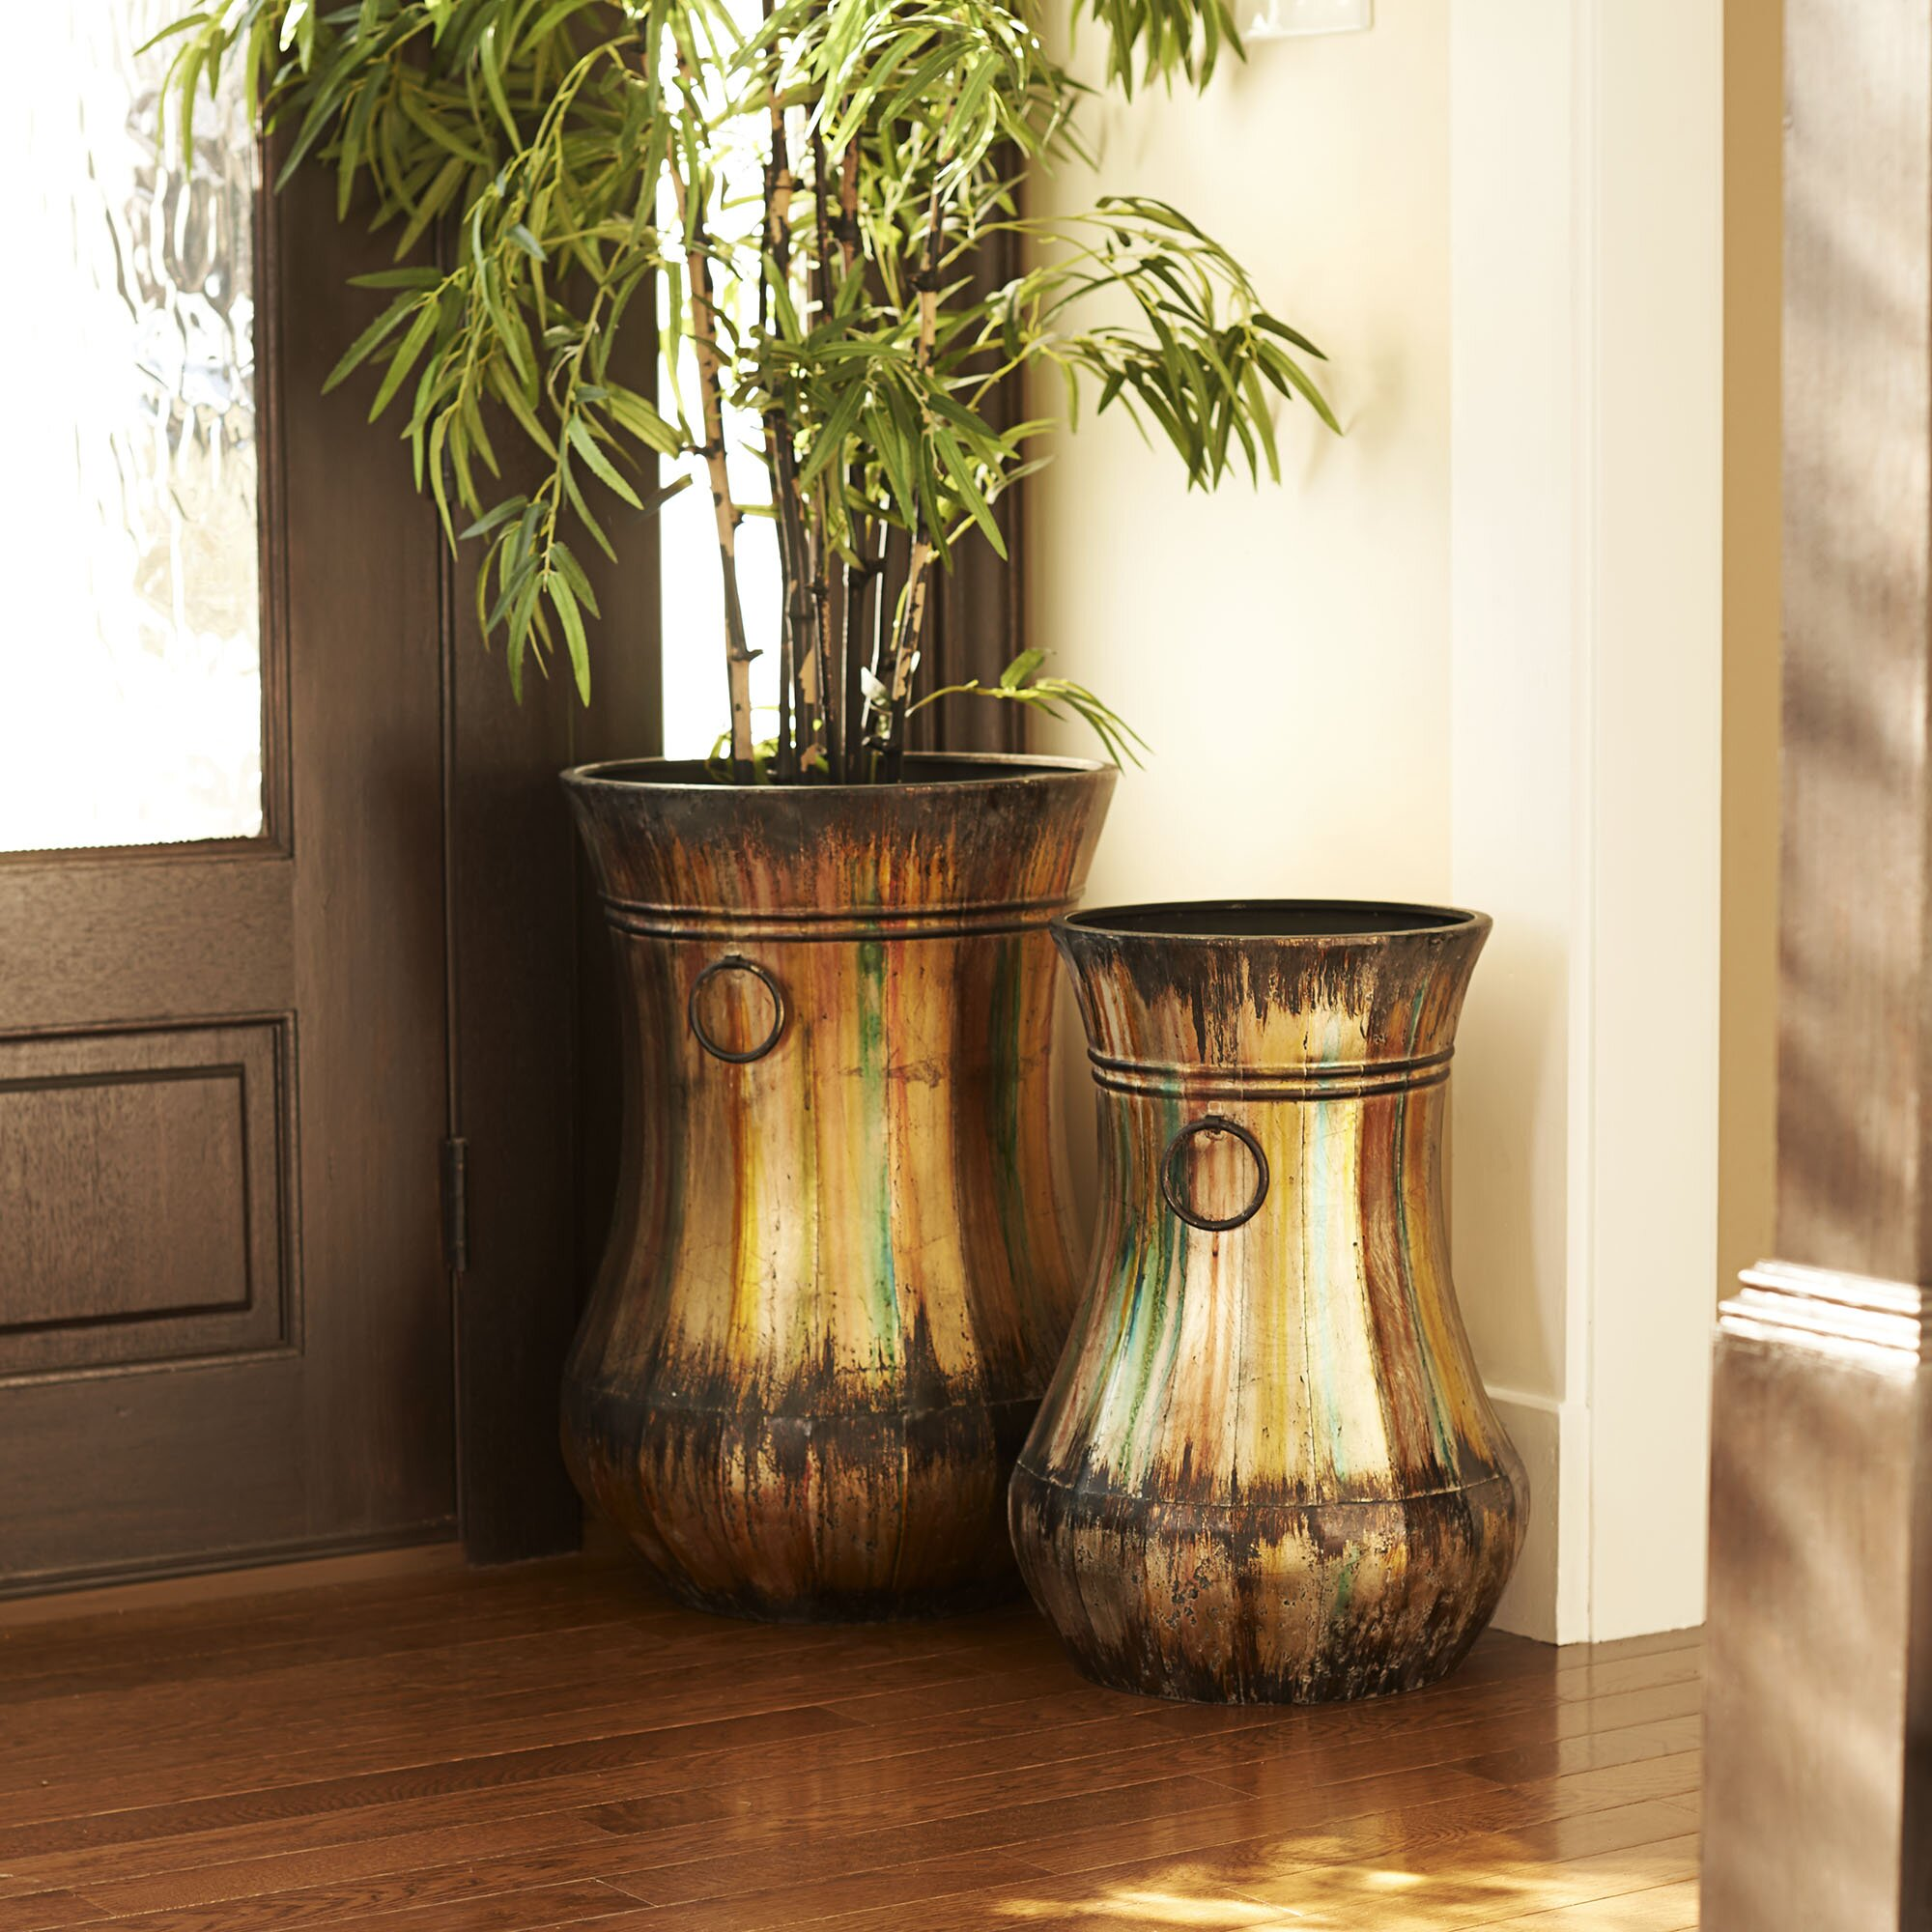 enlarged large products decor vases accents home bronze and vase decorative accessories